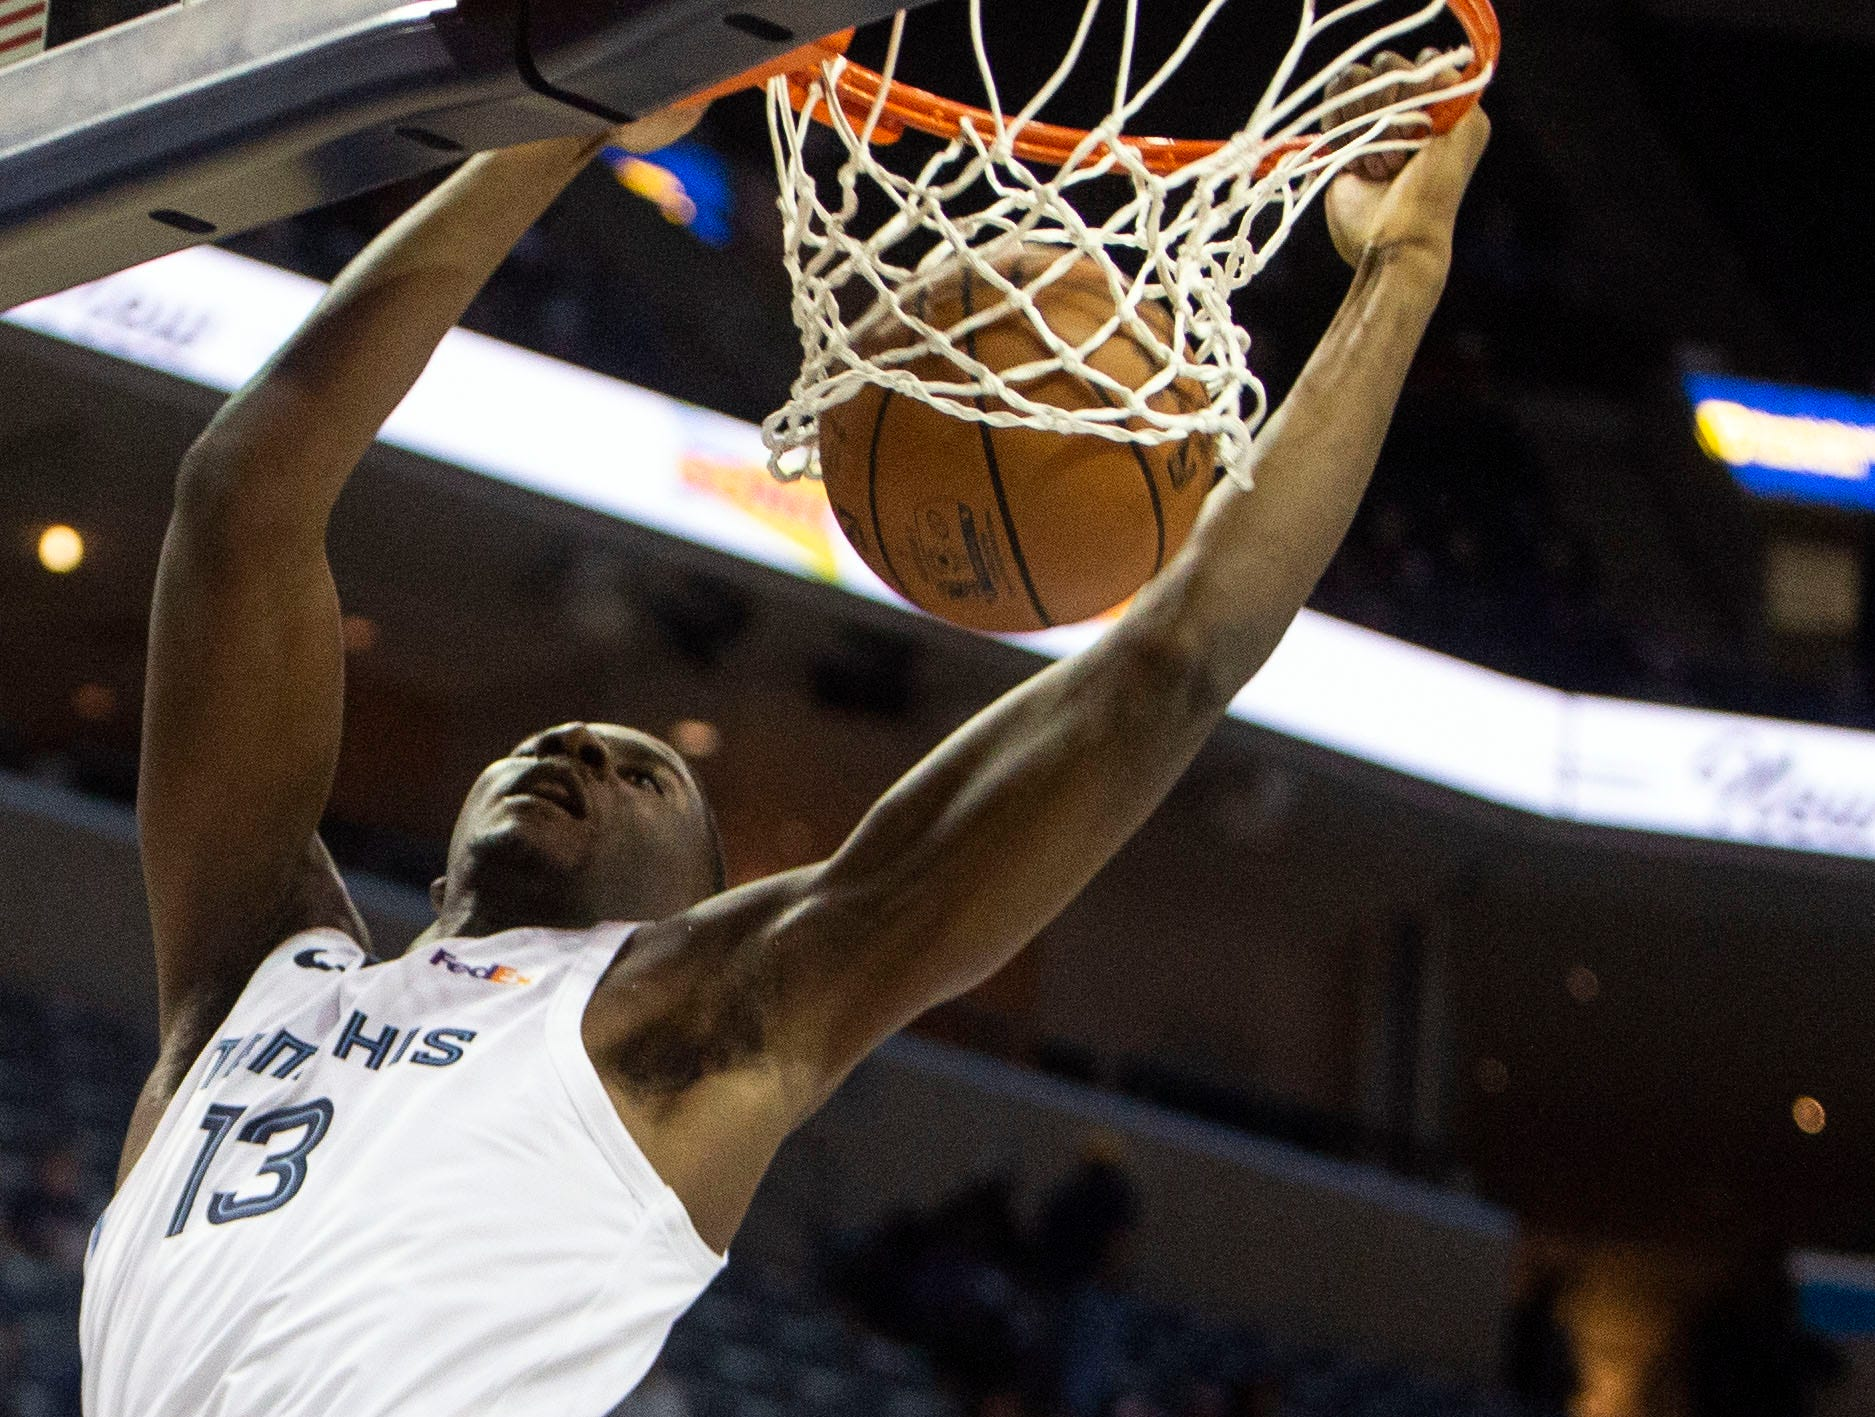 Memphis Grizzles forward Jaren Jackson Jr. (13) shoots over Los  Angeles Clippers center Marcin Gortat (13) during the first half of  a NBA basketball game between the Memphis Grizzlies and the  Los Angeles Clippers in the Fedex Forum, Wednesday, Dec. 5, 2018.